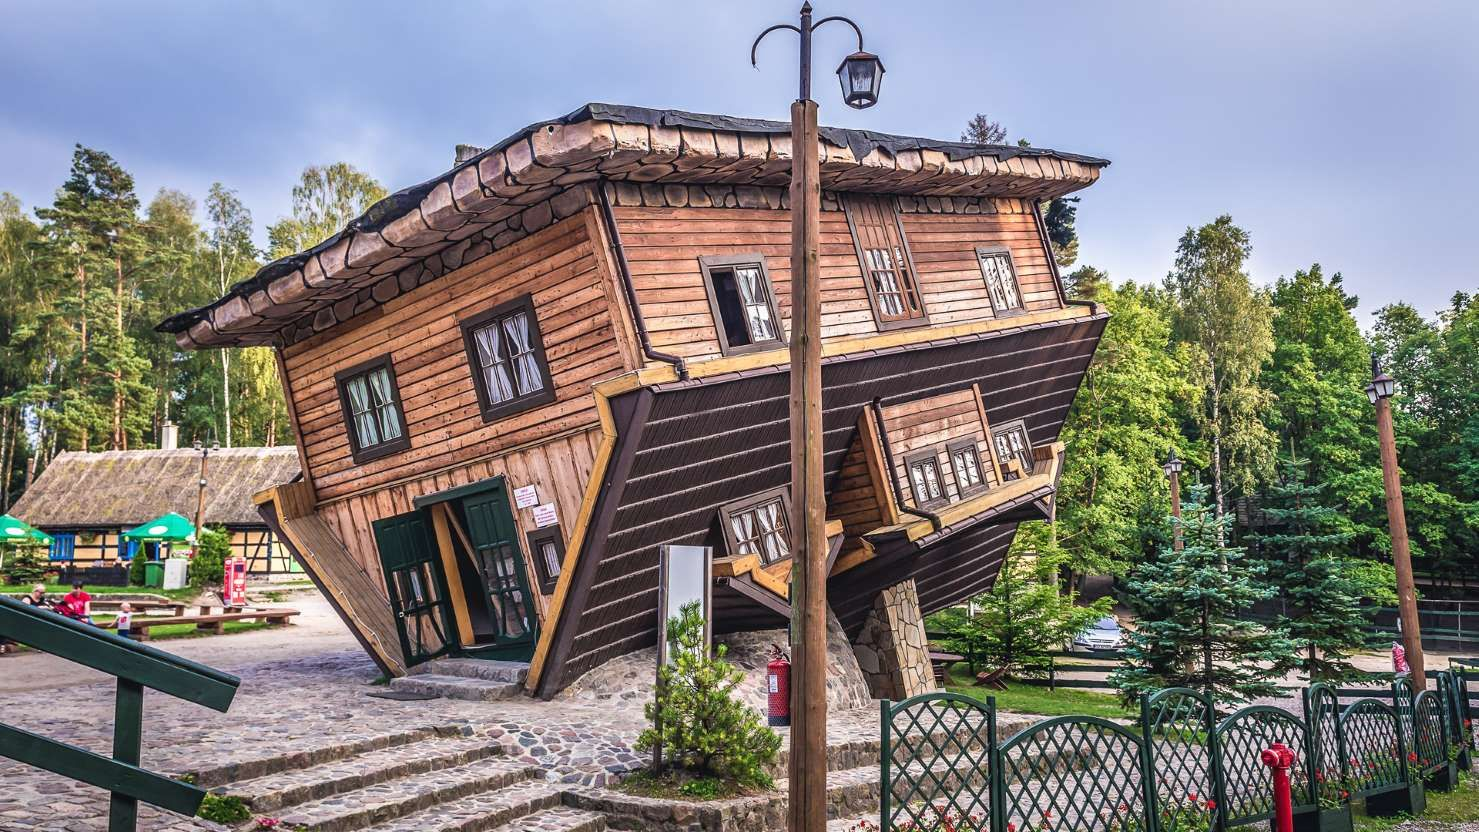 These Crazy UpsideDown Houses Will Make Your Head Turn